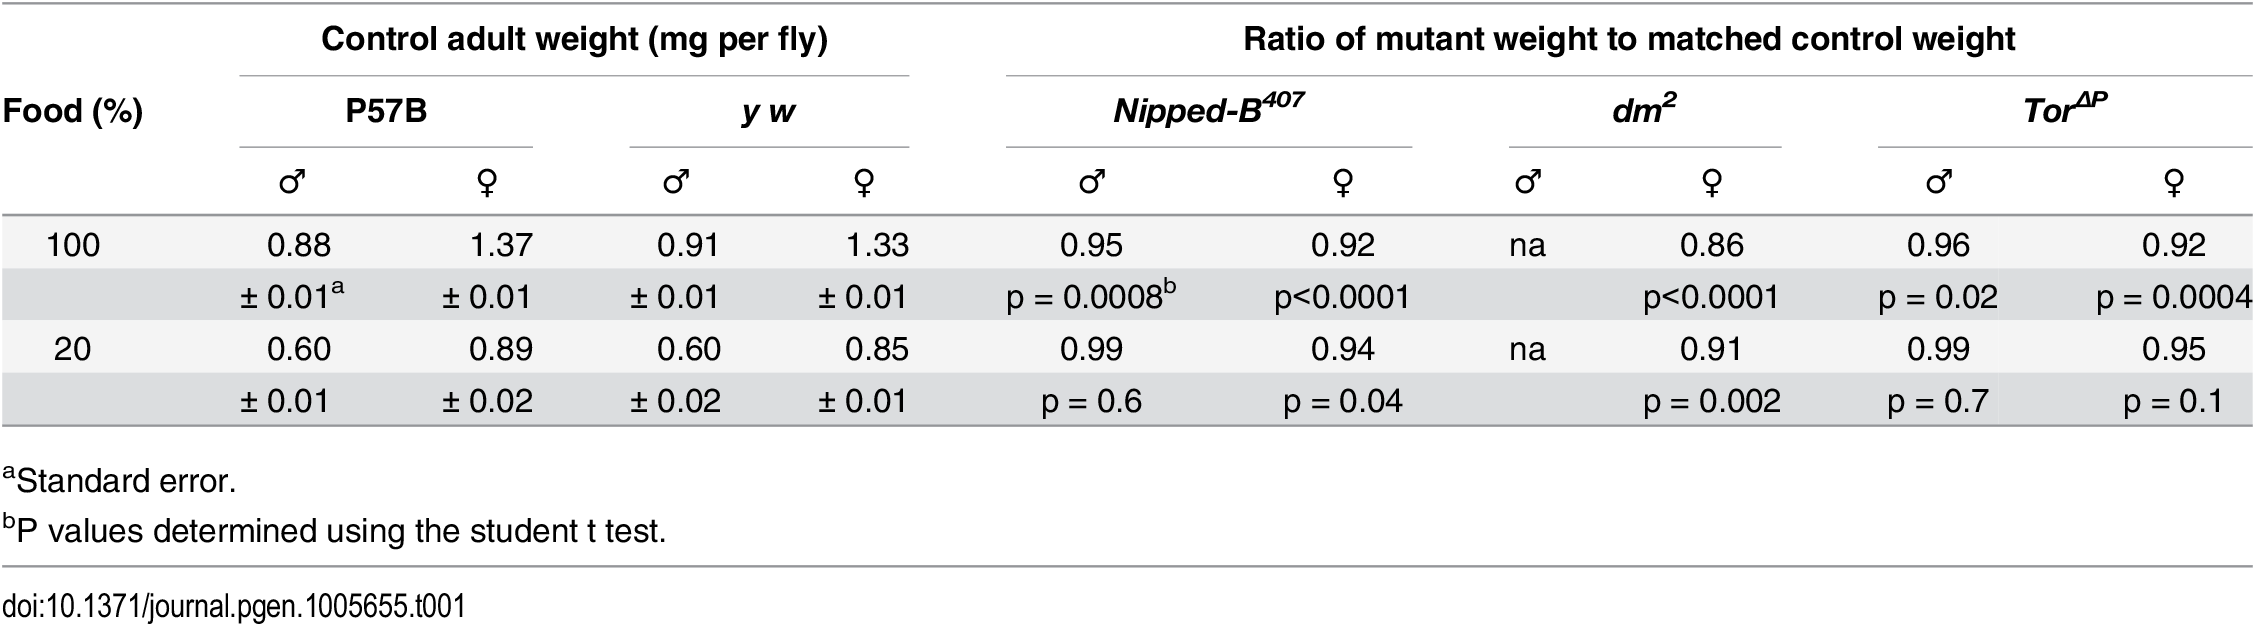 Effects of heterozygous loss-of-function <i>Nipped-B</i>, <i>dm</i>, and <i>Tor</i> mutations on adult body weight.